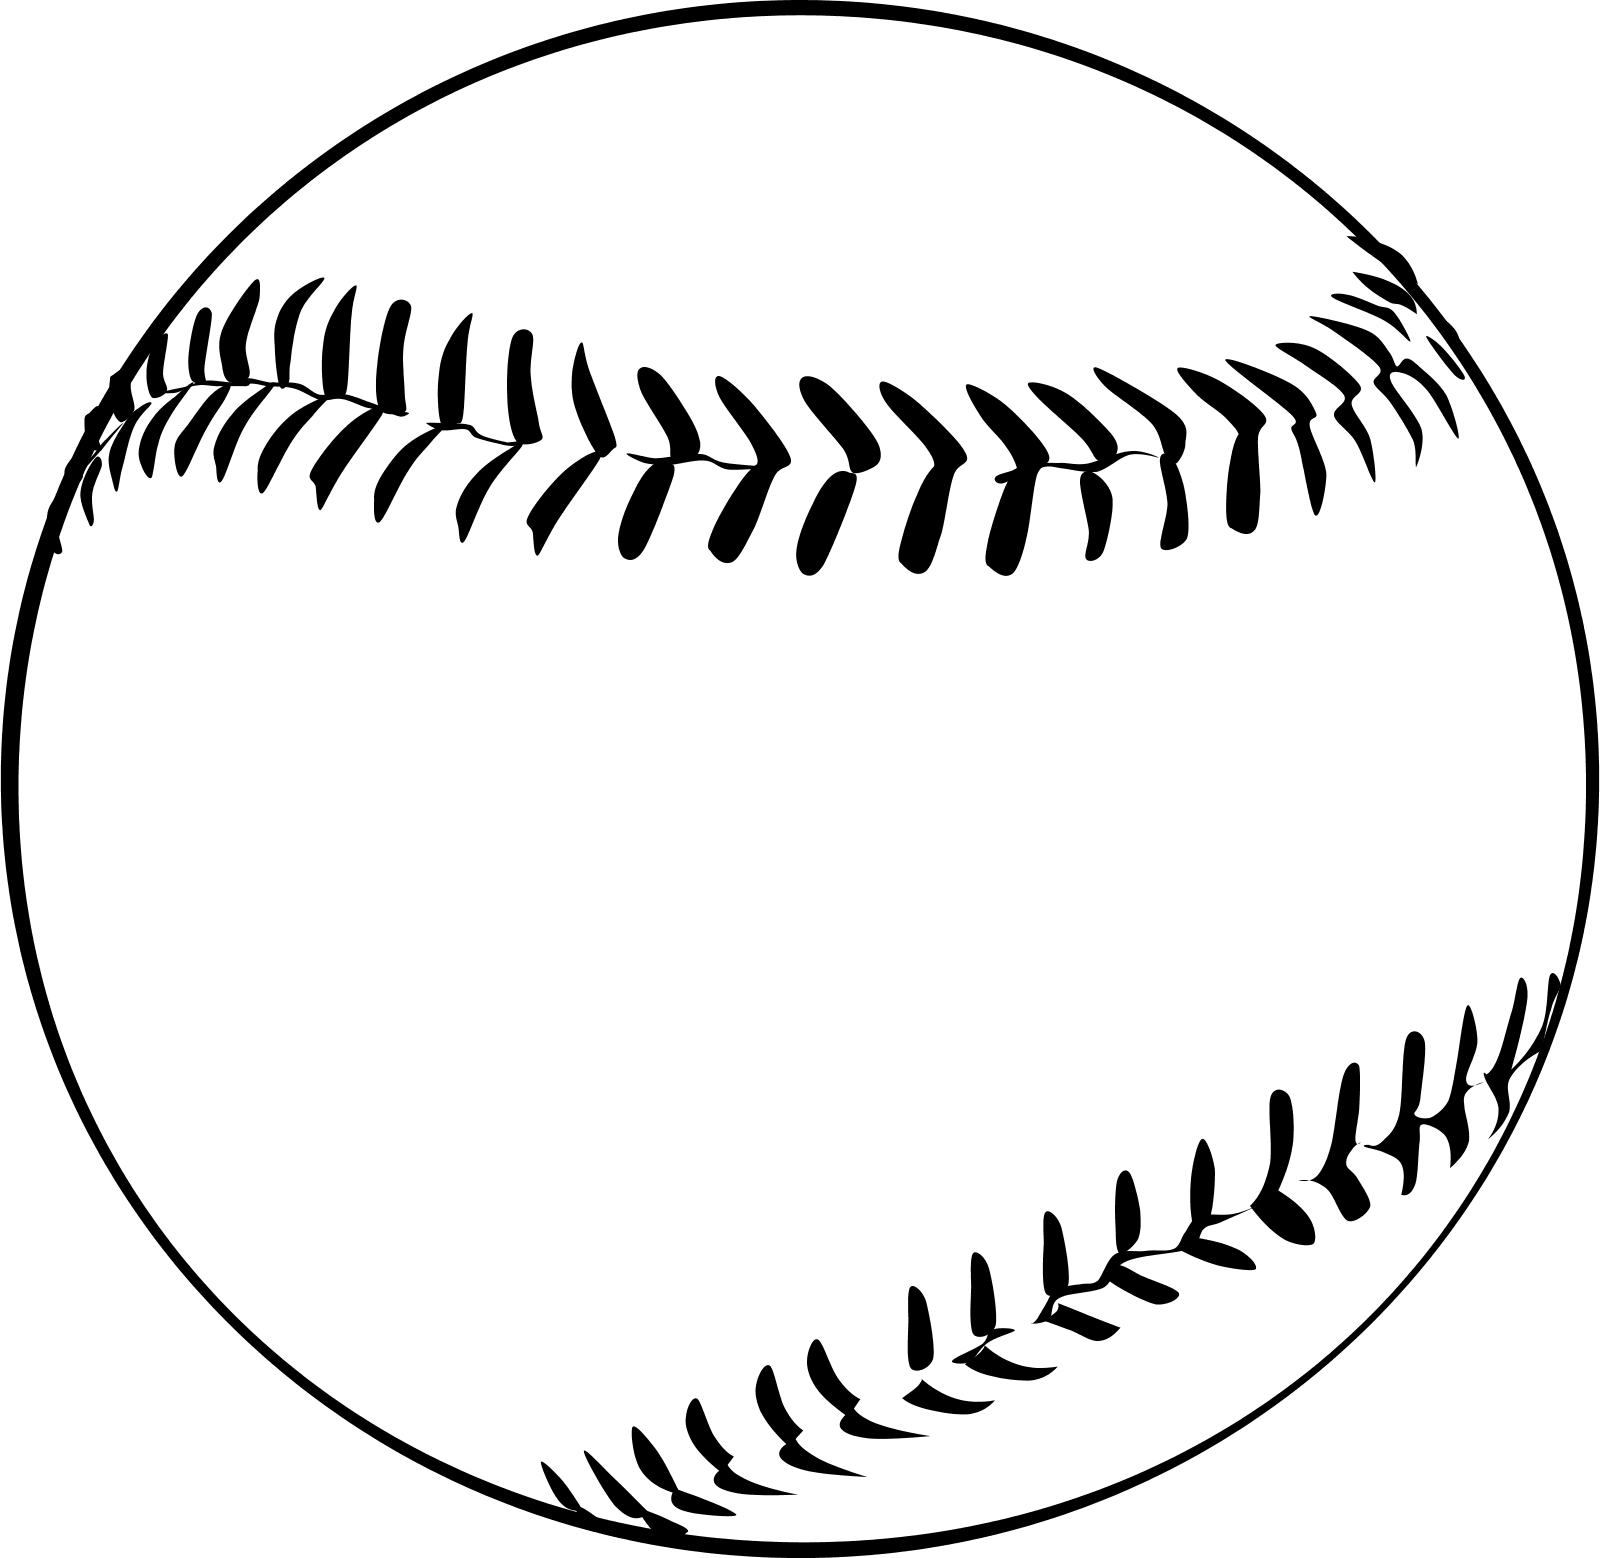 Black and white football clipart no background graphic free library 28+ Collection of Baseball Clipart Png | High quality, free cliparts ... graphic free library